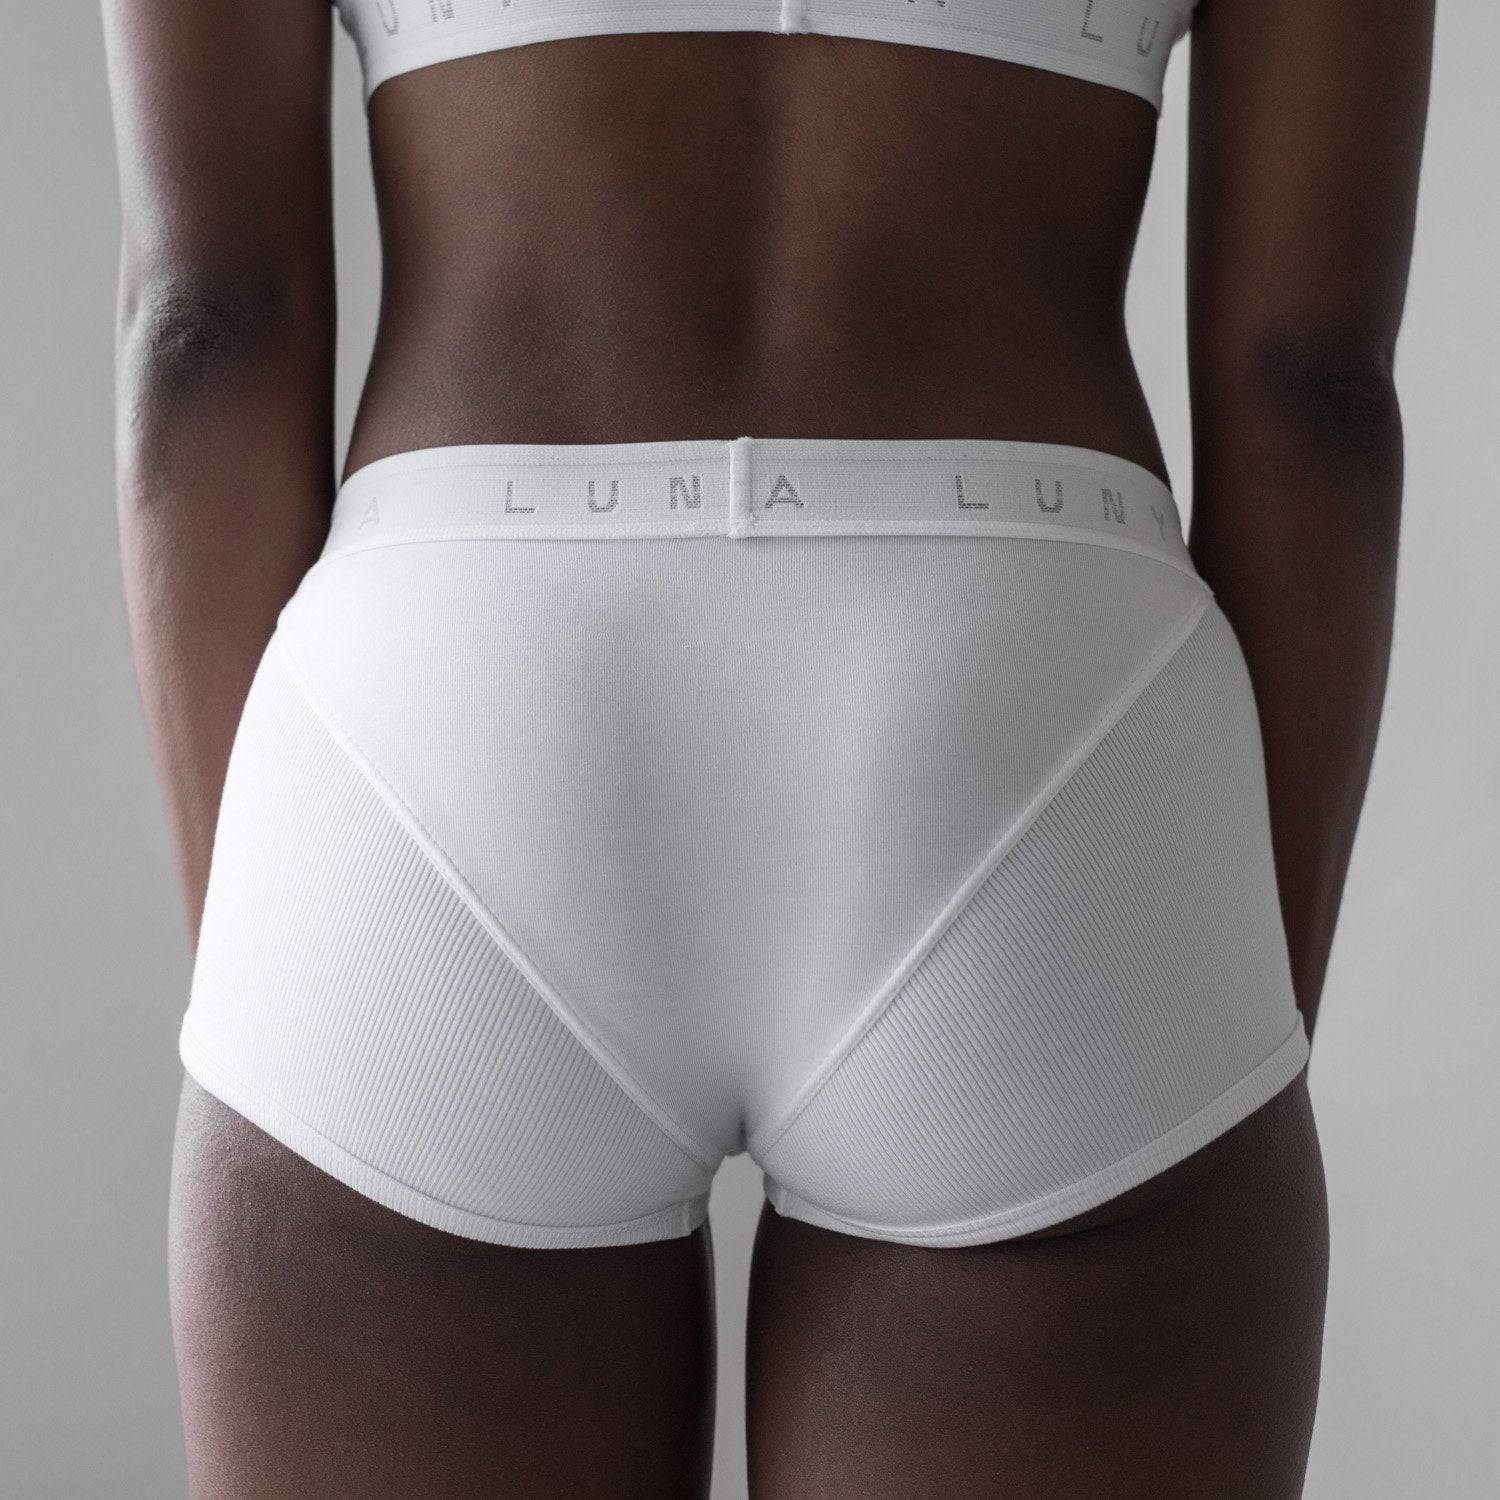 Lunya Sleepwear Supportive Modal Sleep Brief - #White/White